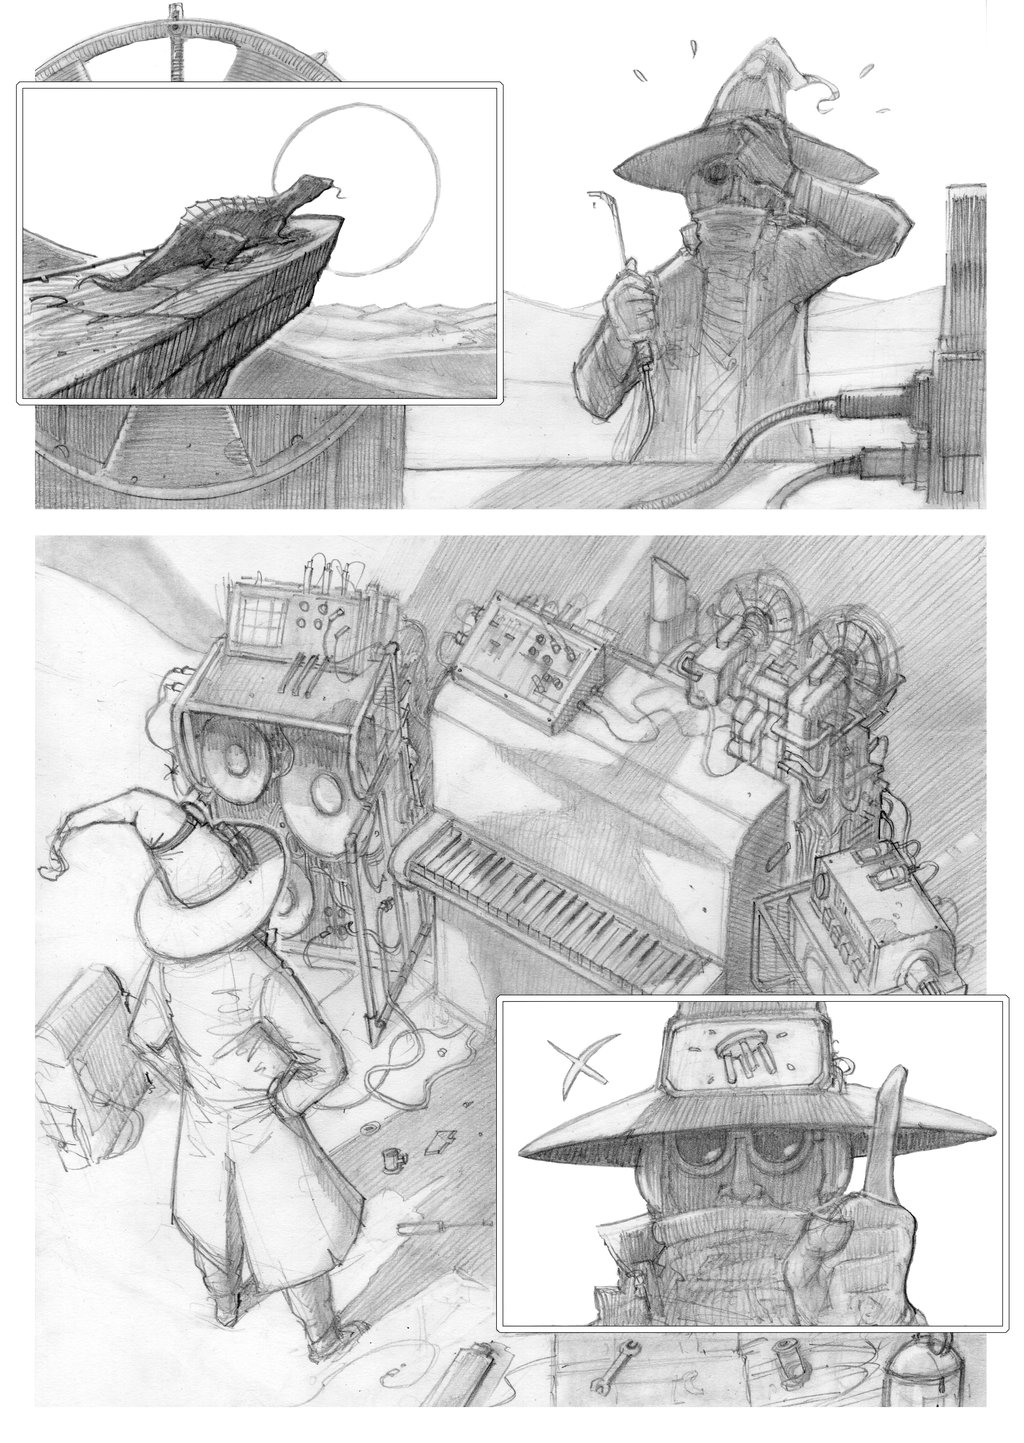 comic pages by Absurdostudio.